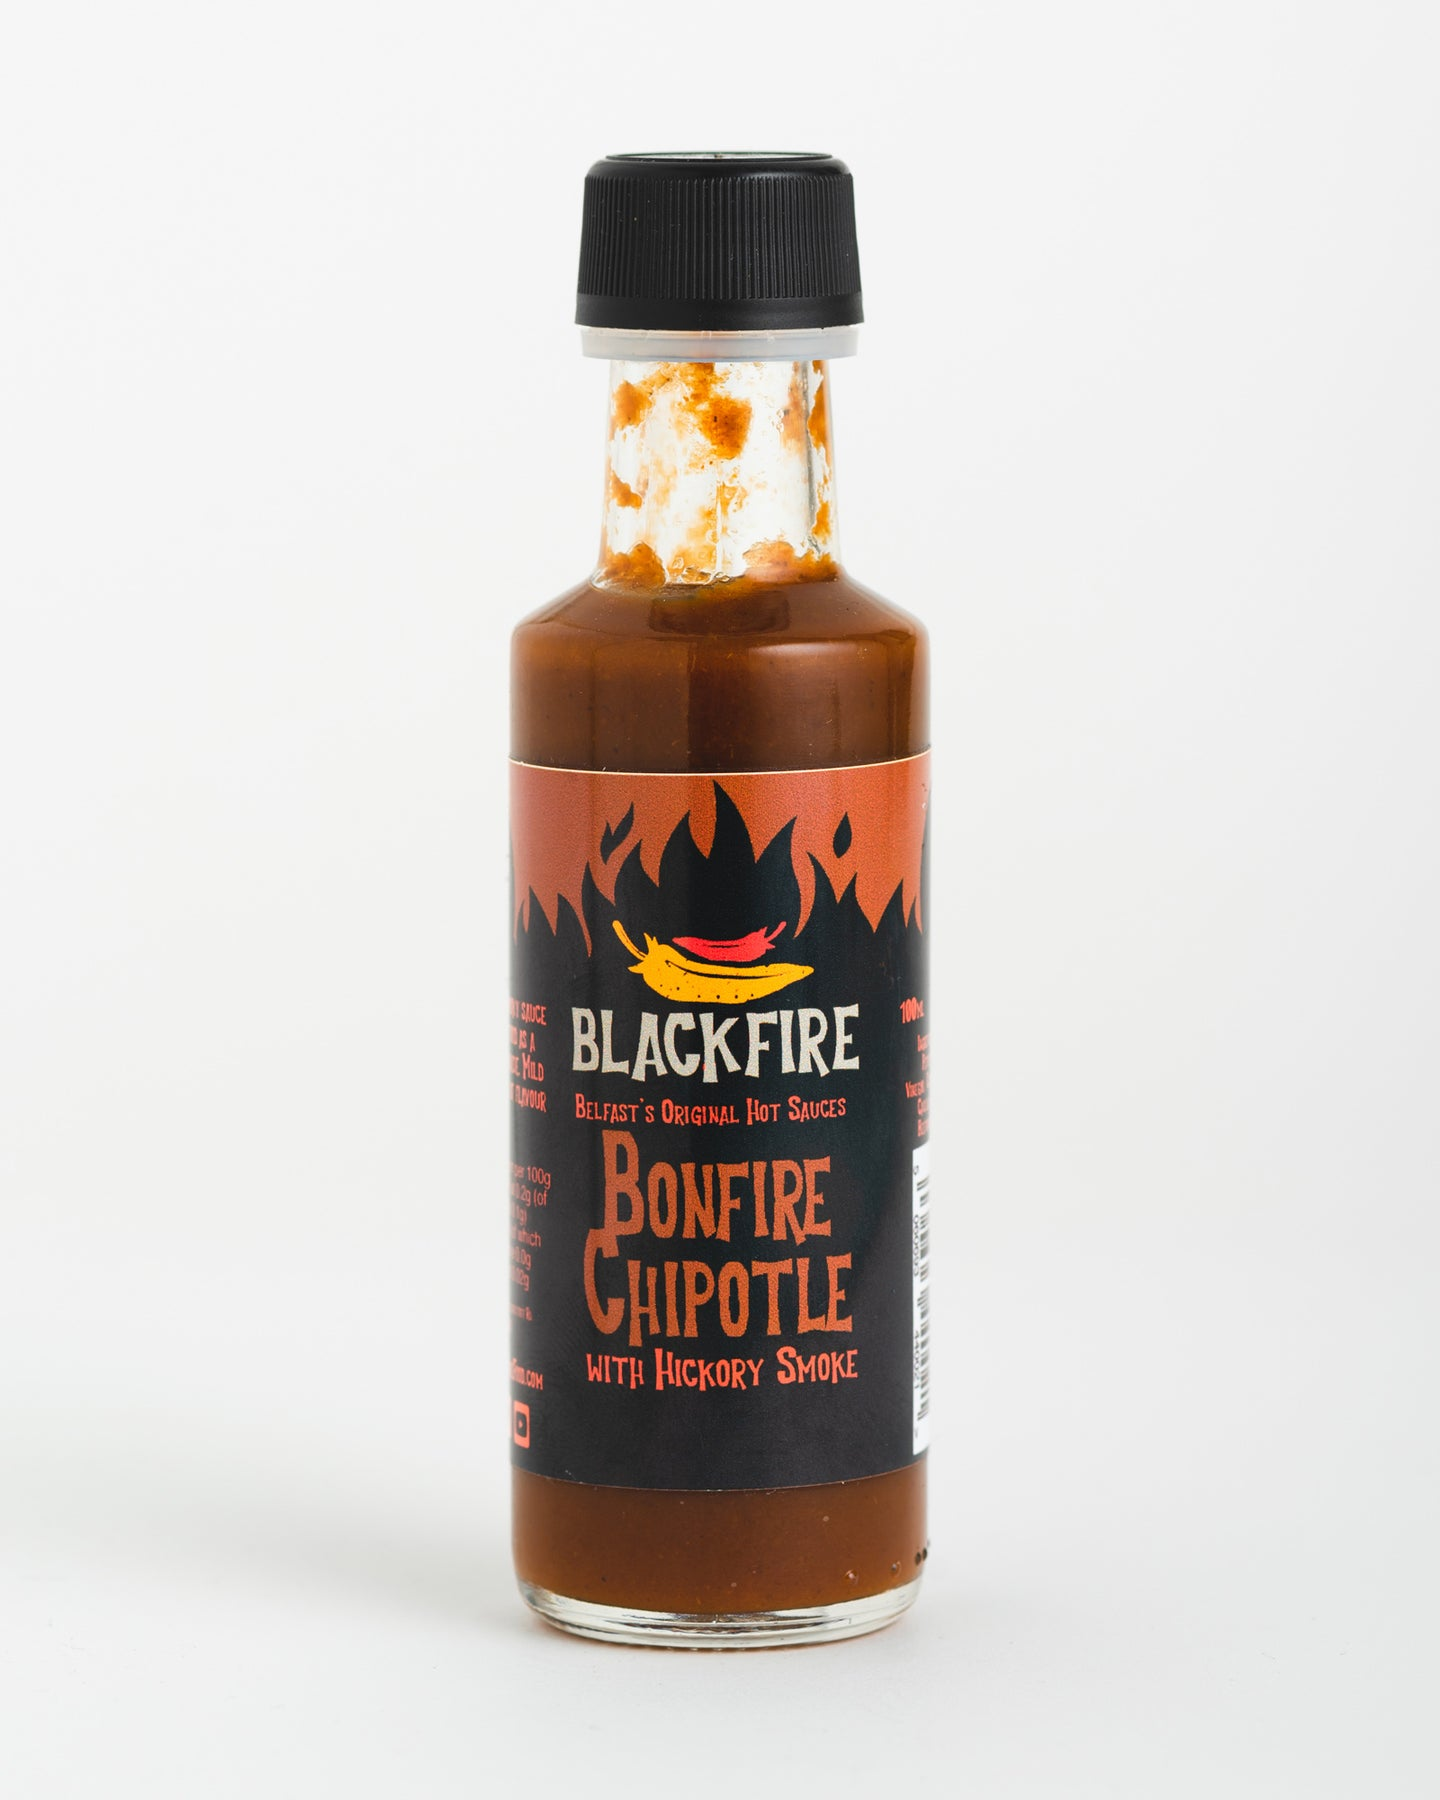 Blackfire - Bonfire Chipotle